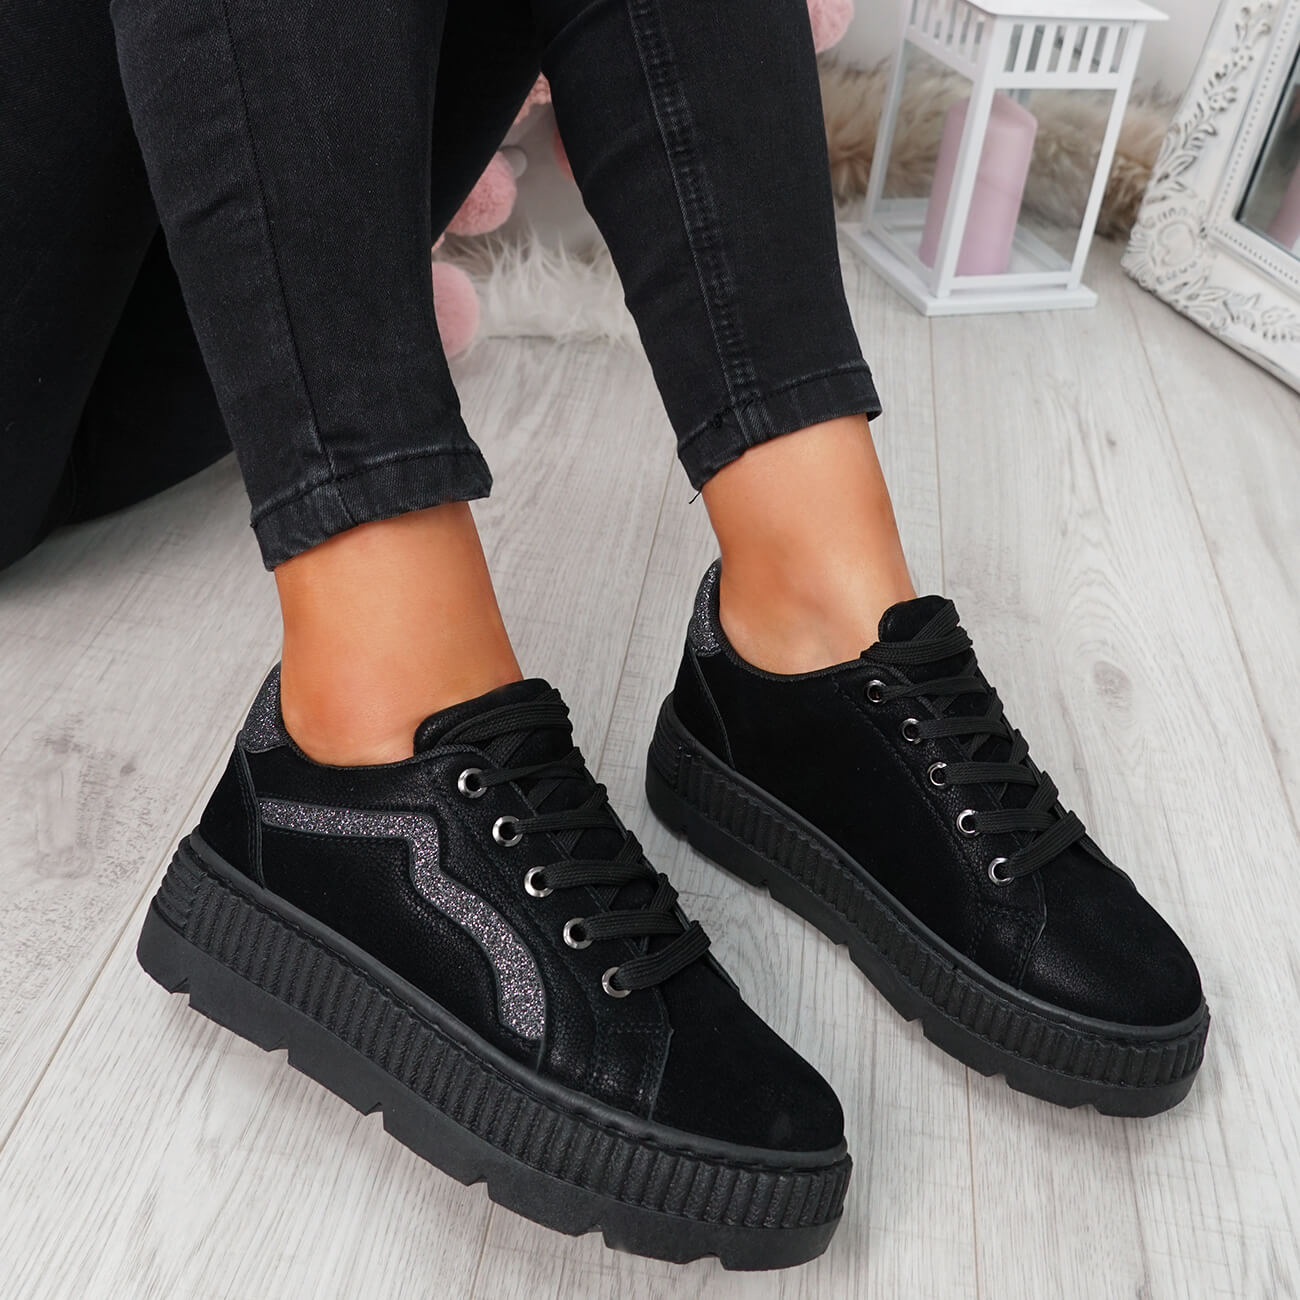 WOMENS-LADIES-LACE-UP-PLATFORM-TRAINERS-PLIMSOLL-SKATE-SNEAKERS-SHOES-SIZE thumbnail 10